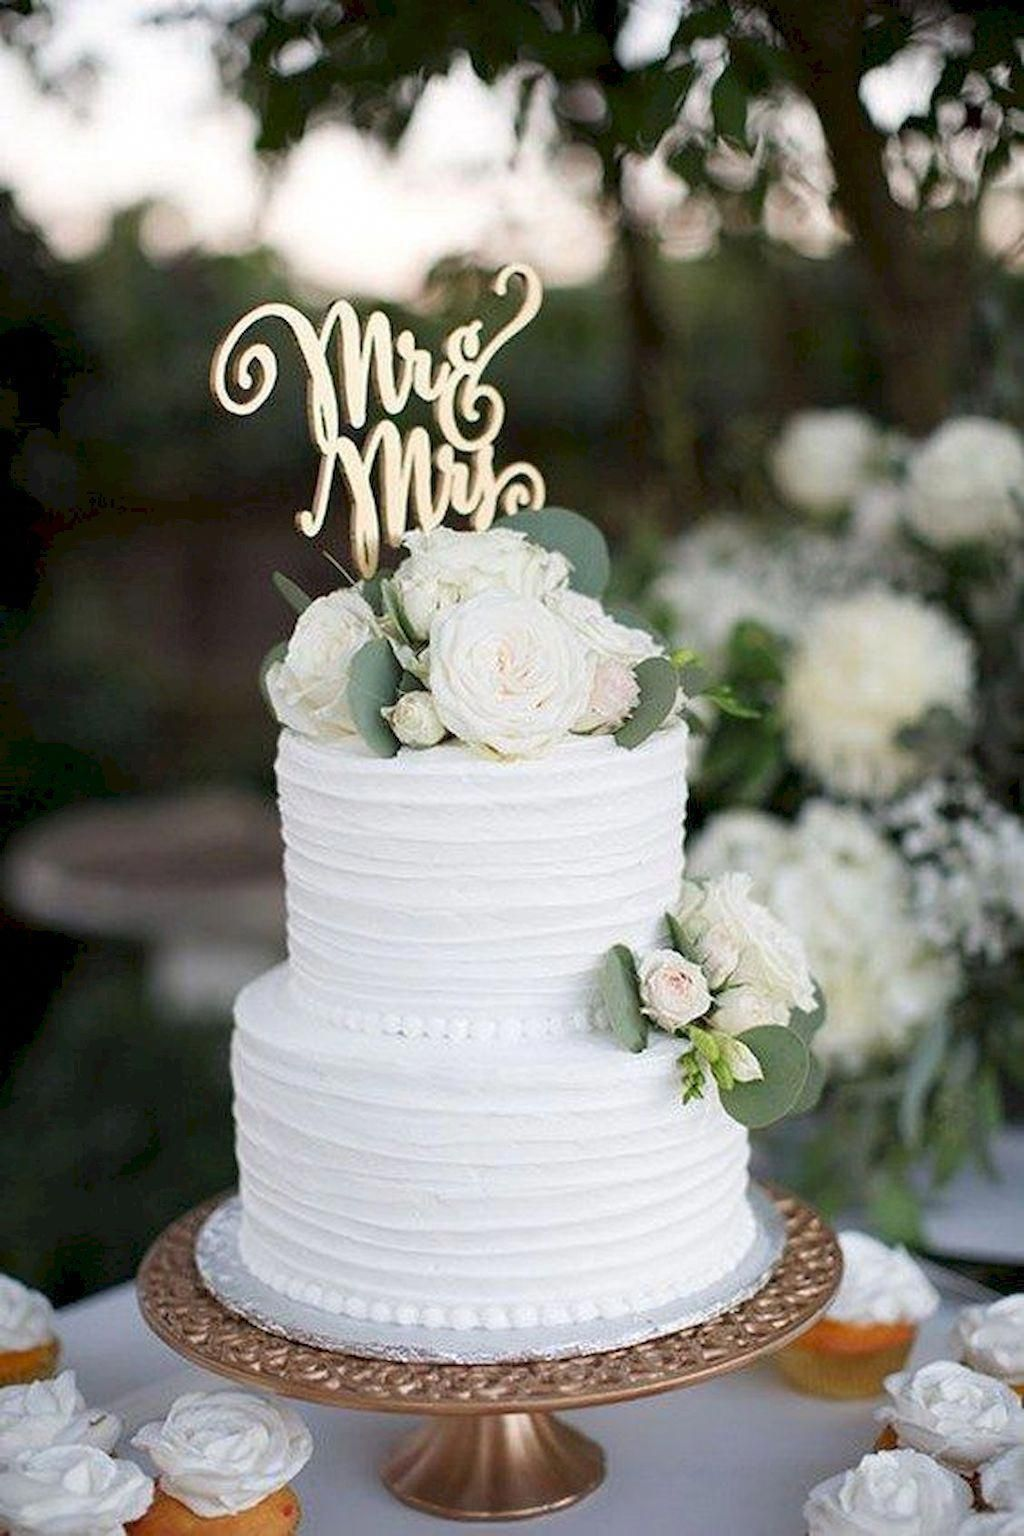 How Much Do Wedding Cakes Cost Woman Getting Married Wedding Cake Recipe Wedding Cake Cost Wedding Cake Prices